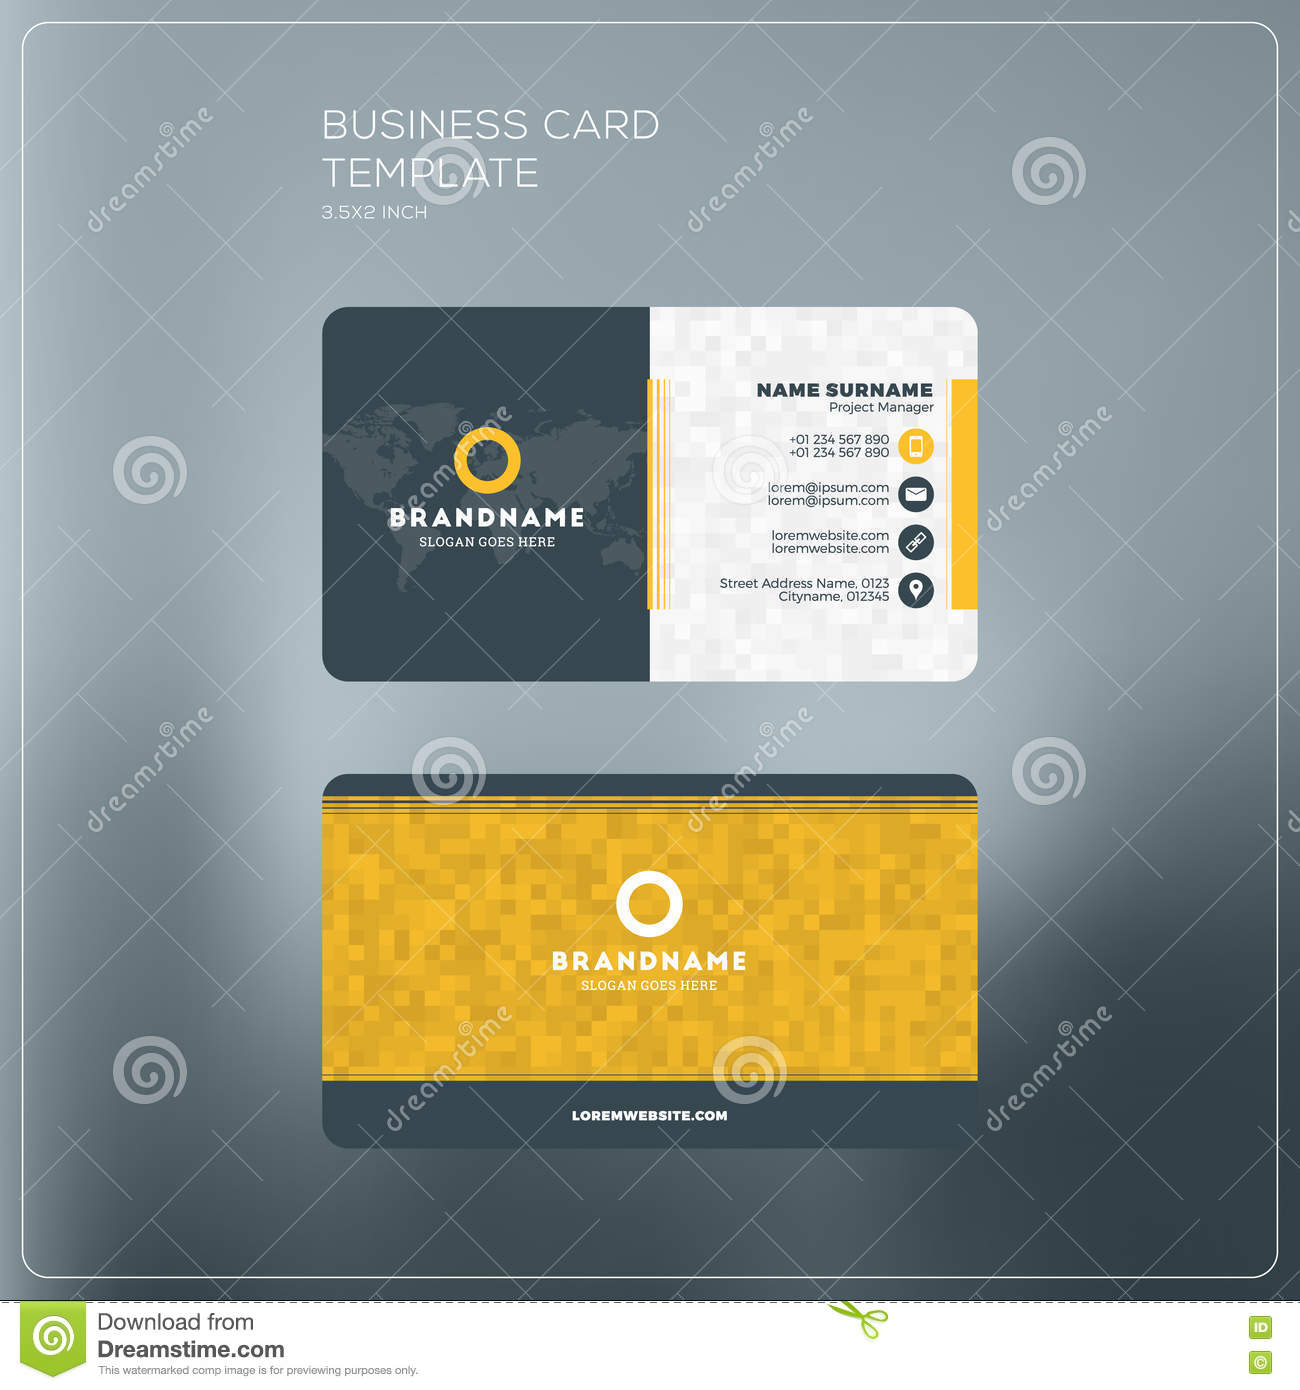 Corporate business card print template personal visiting card w corporate business card print template personal visiting card w accmission Choice Image